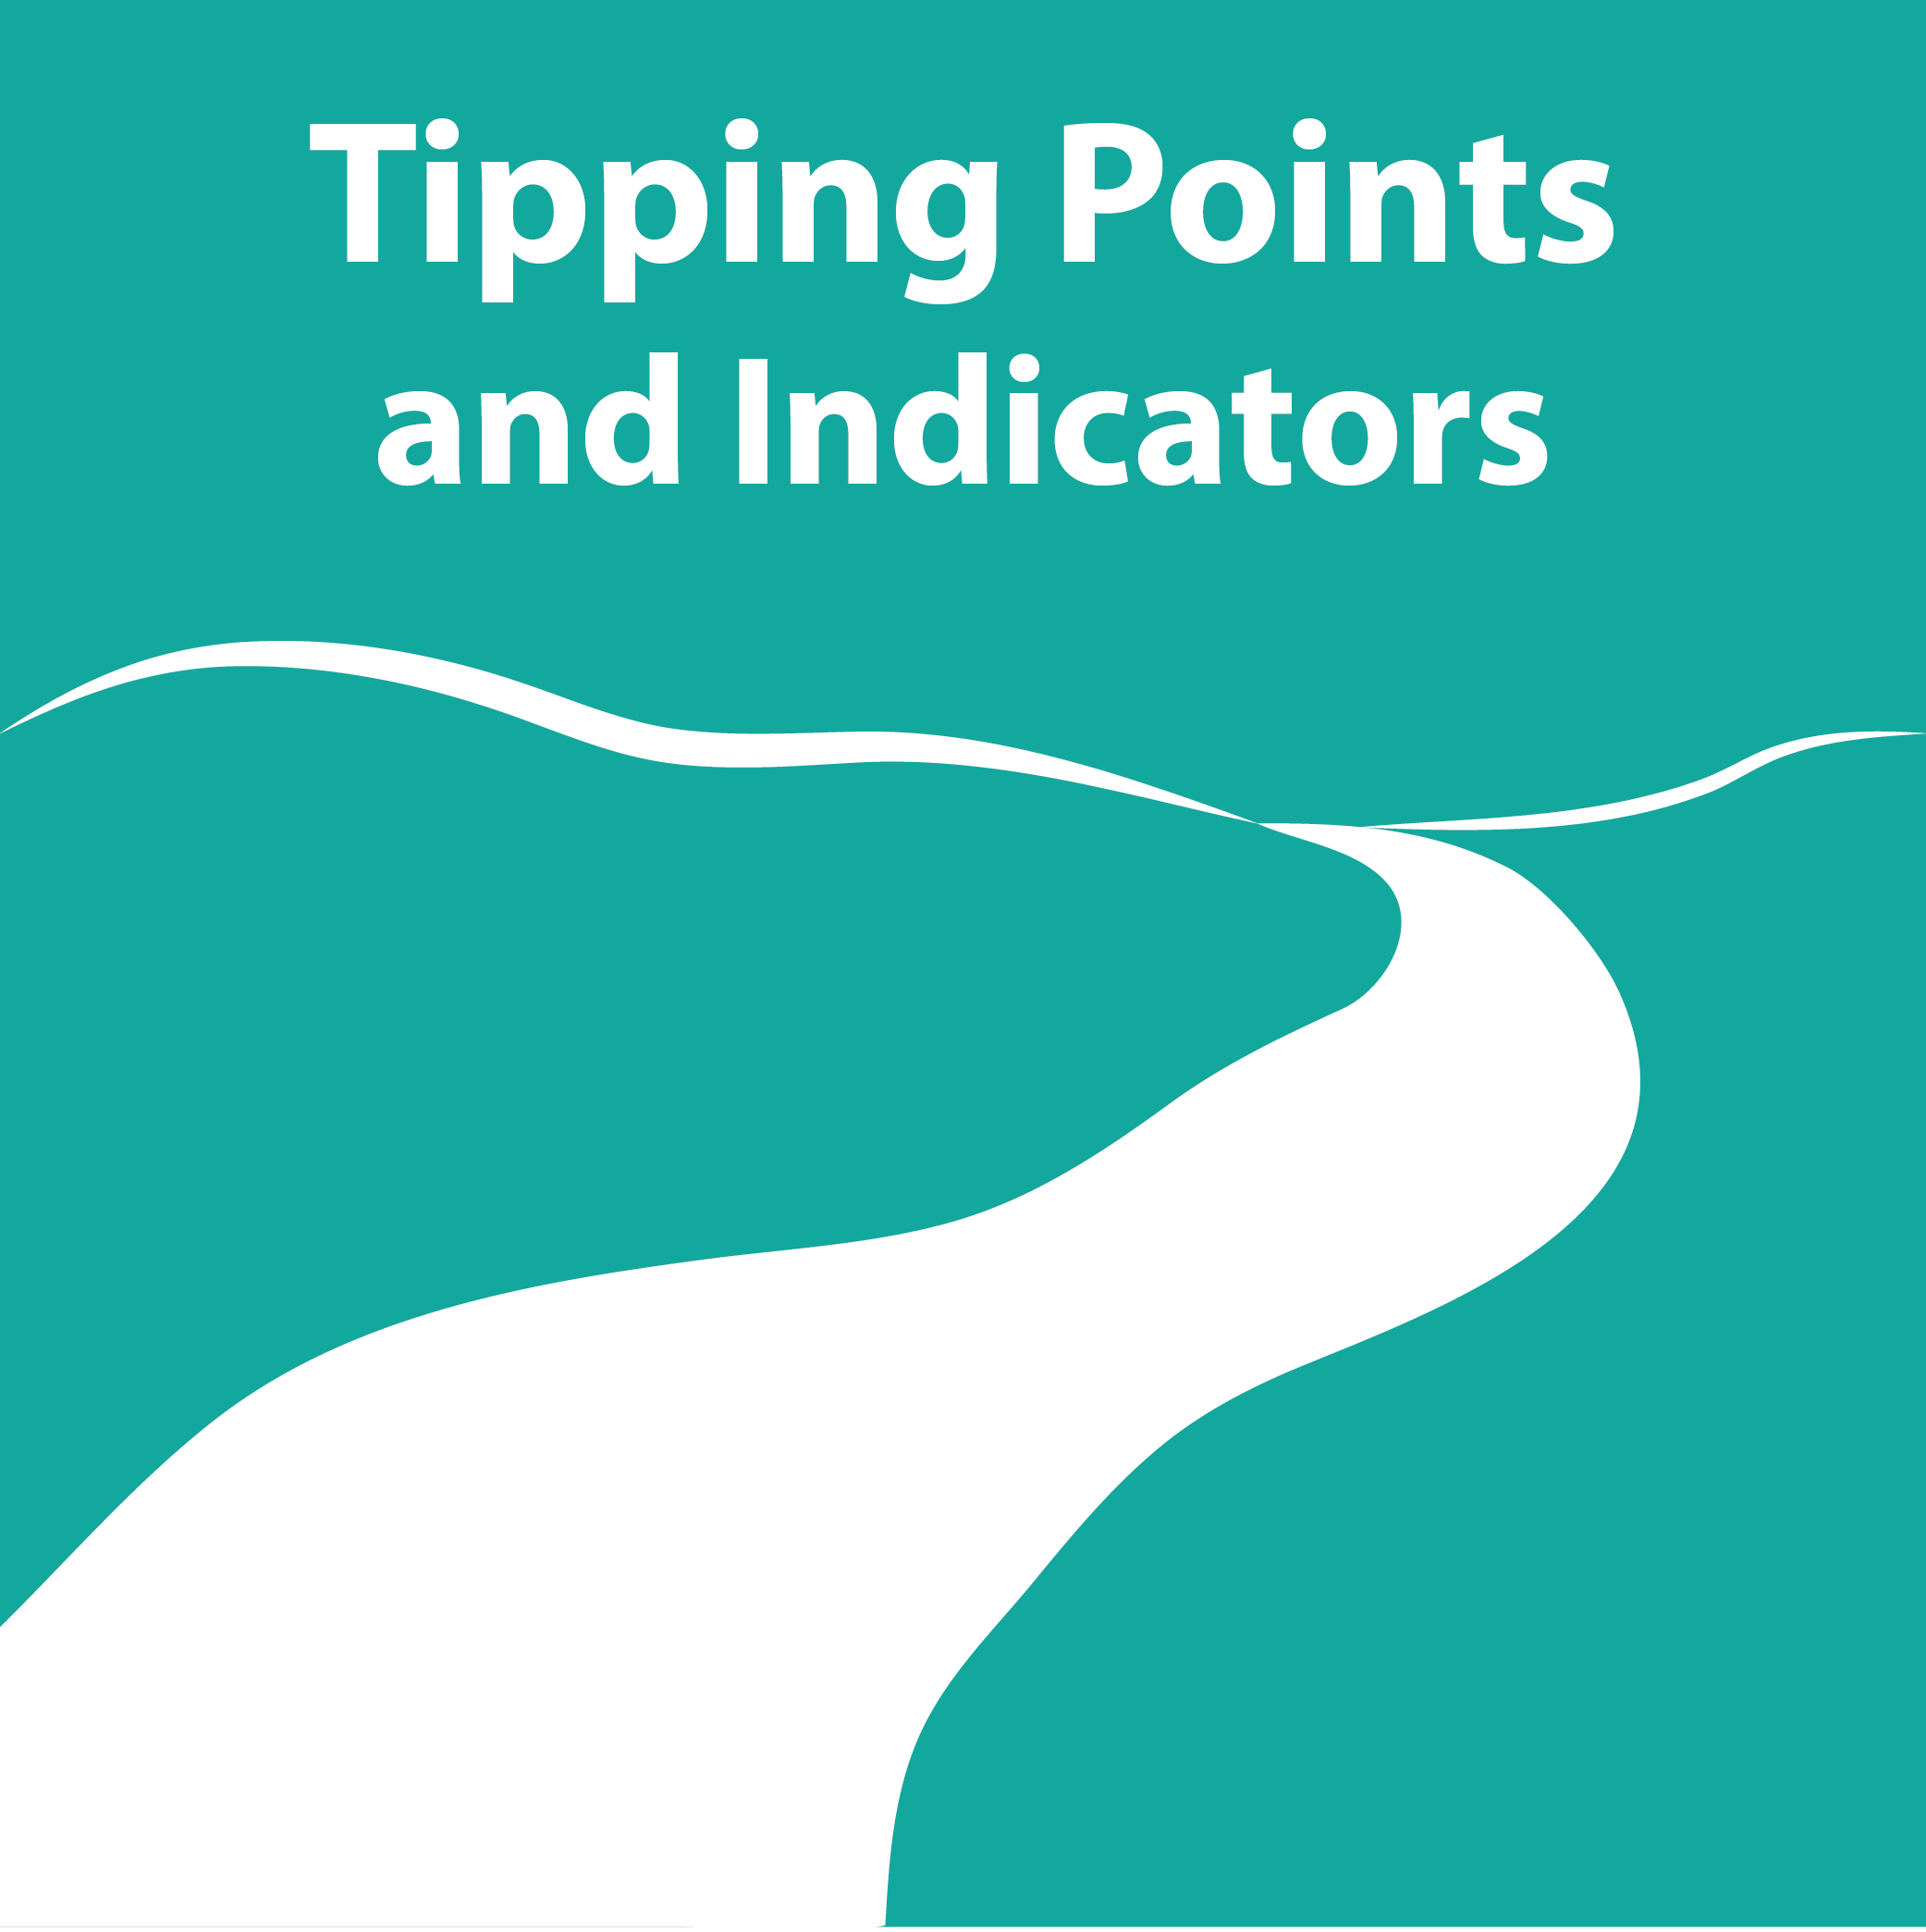 Tipping Points and Indicators